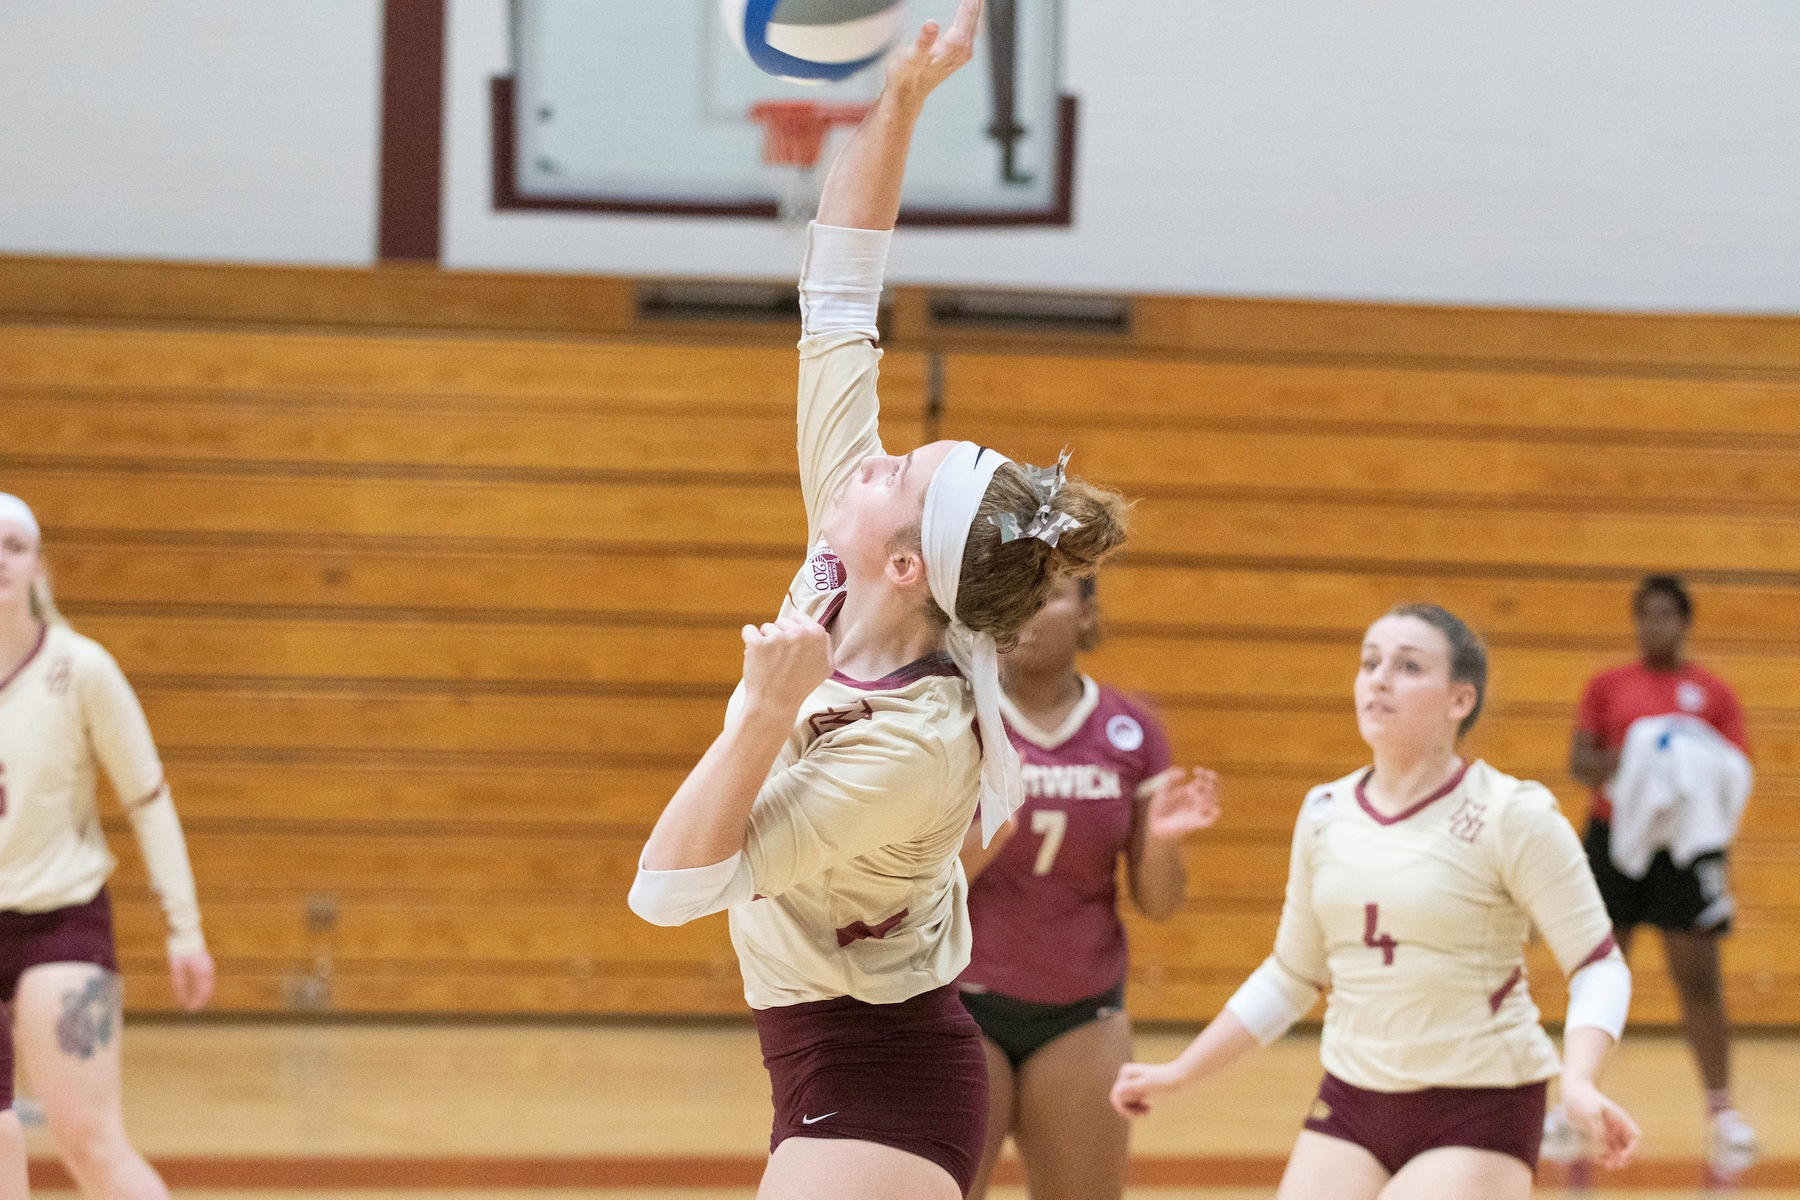 Volleyball: Norwich defeats Southern Vermont, 3-2